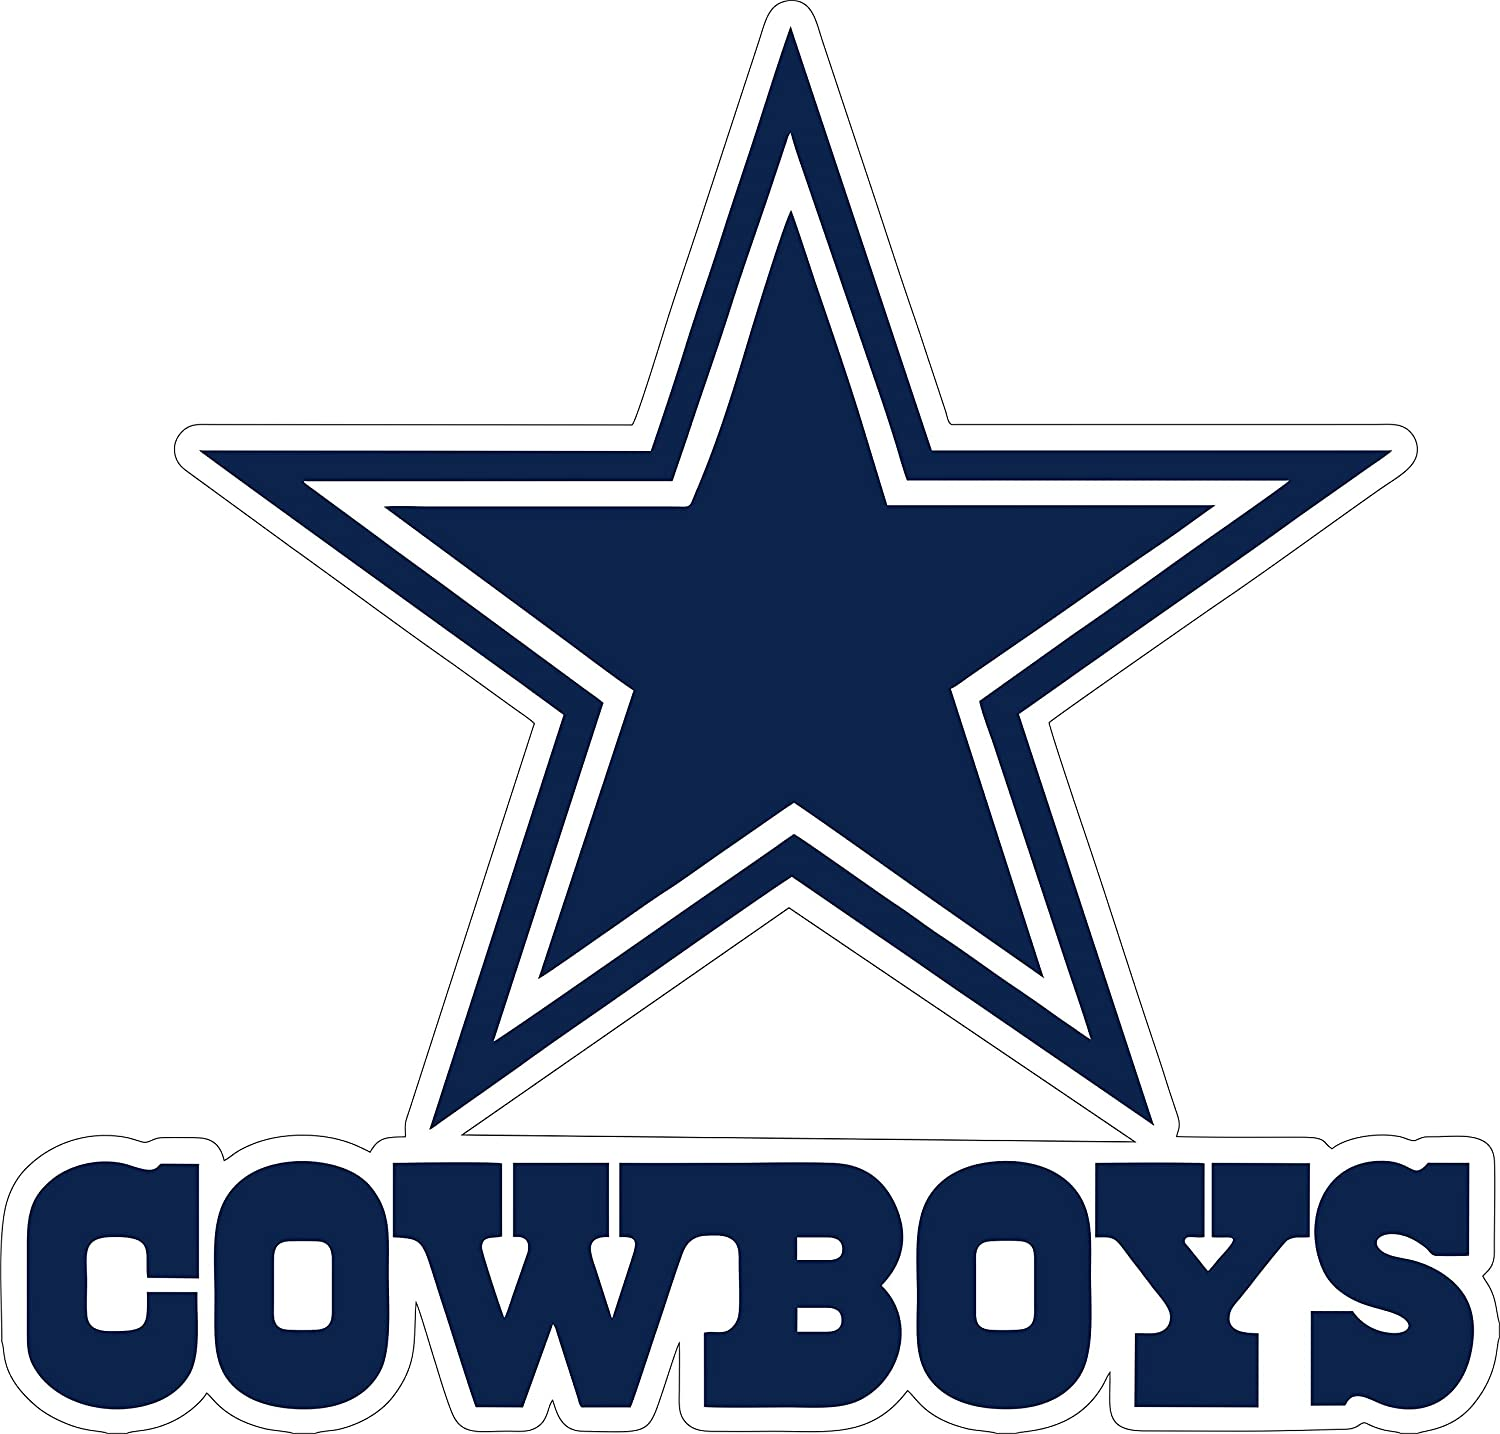 Dallas Star Stickers Team Colors (4 Size) Dallas Cowboy Logo Decal Vinyl for car bamper, hemlet, Laptop, tumblers (9